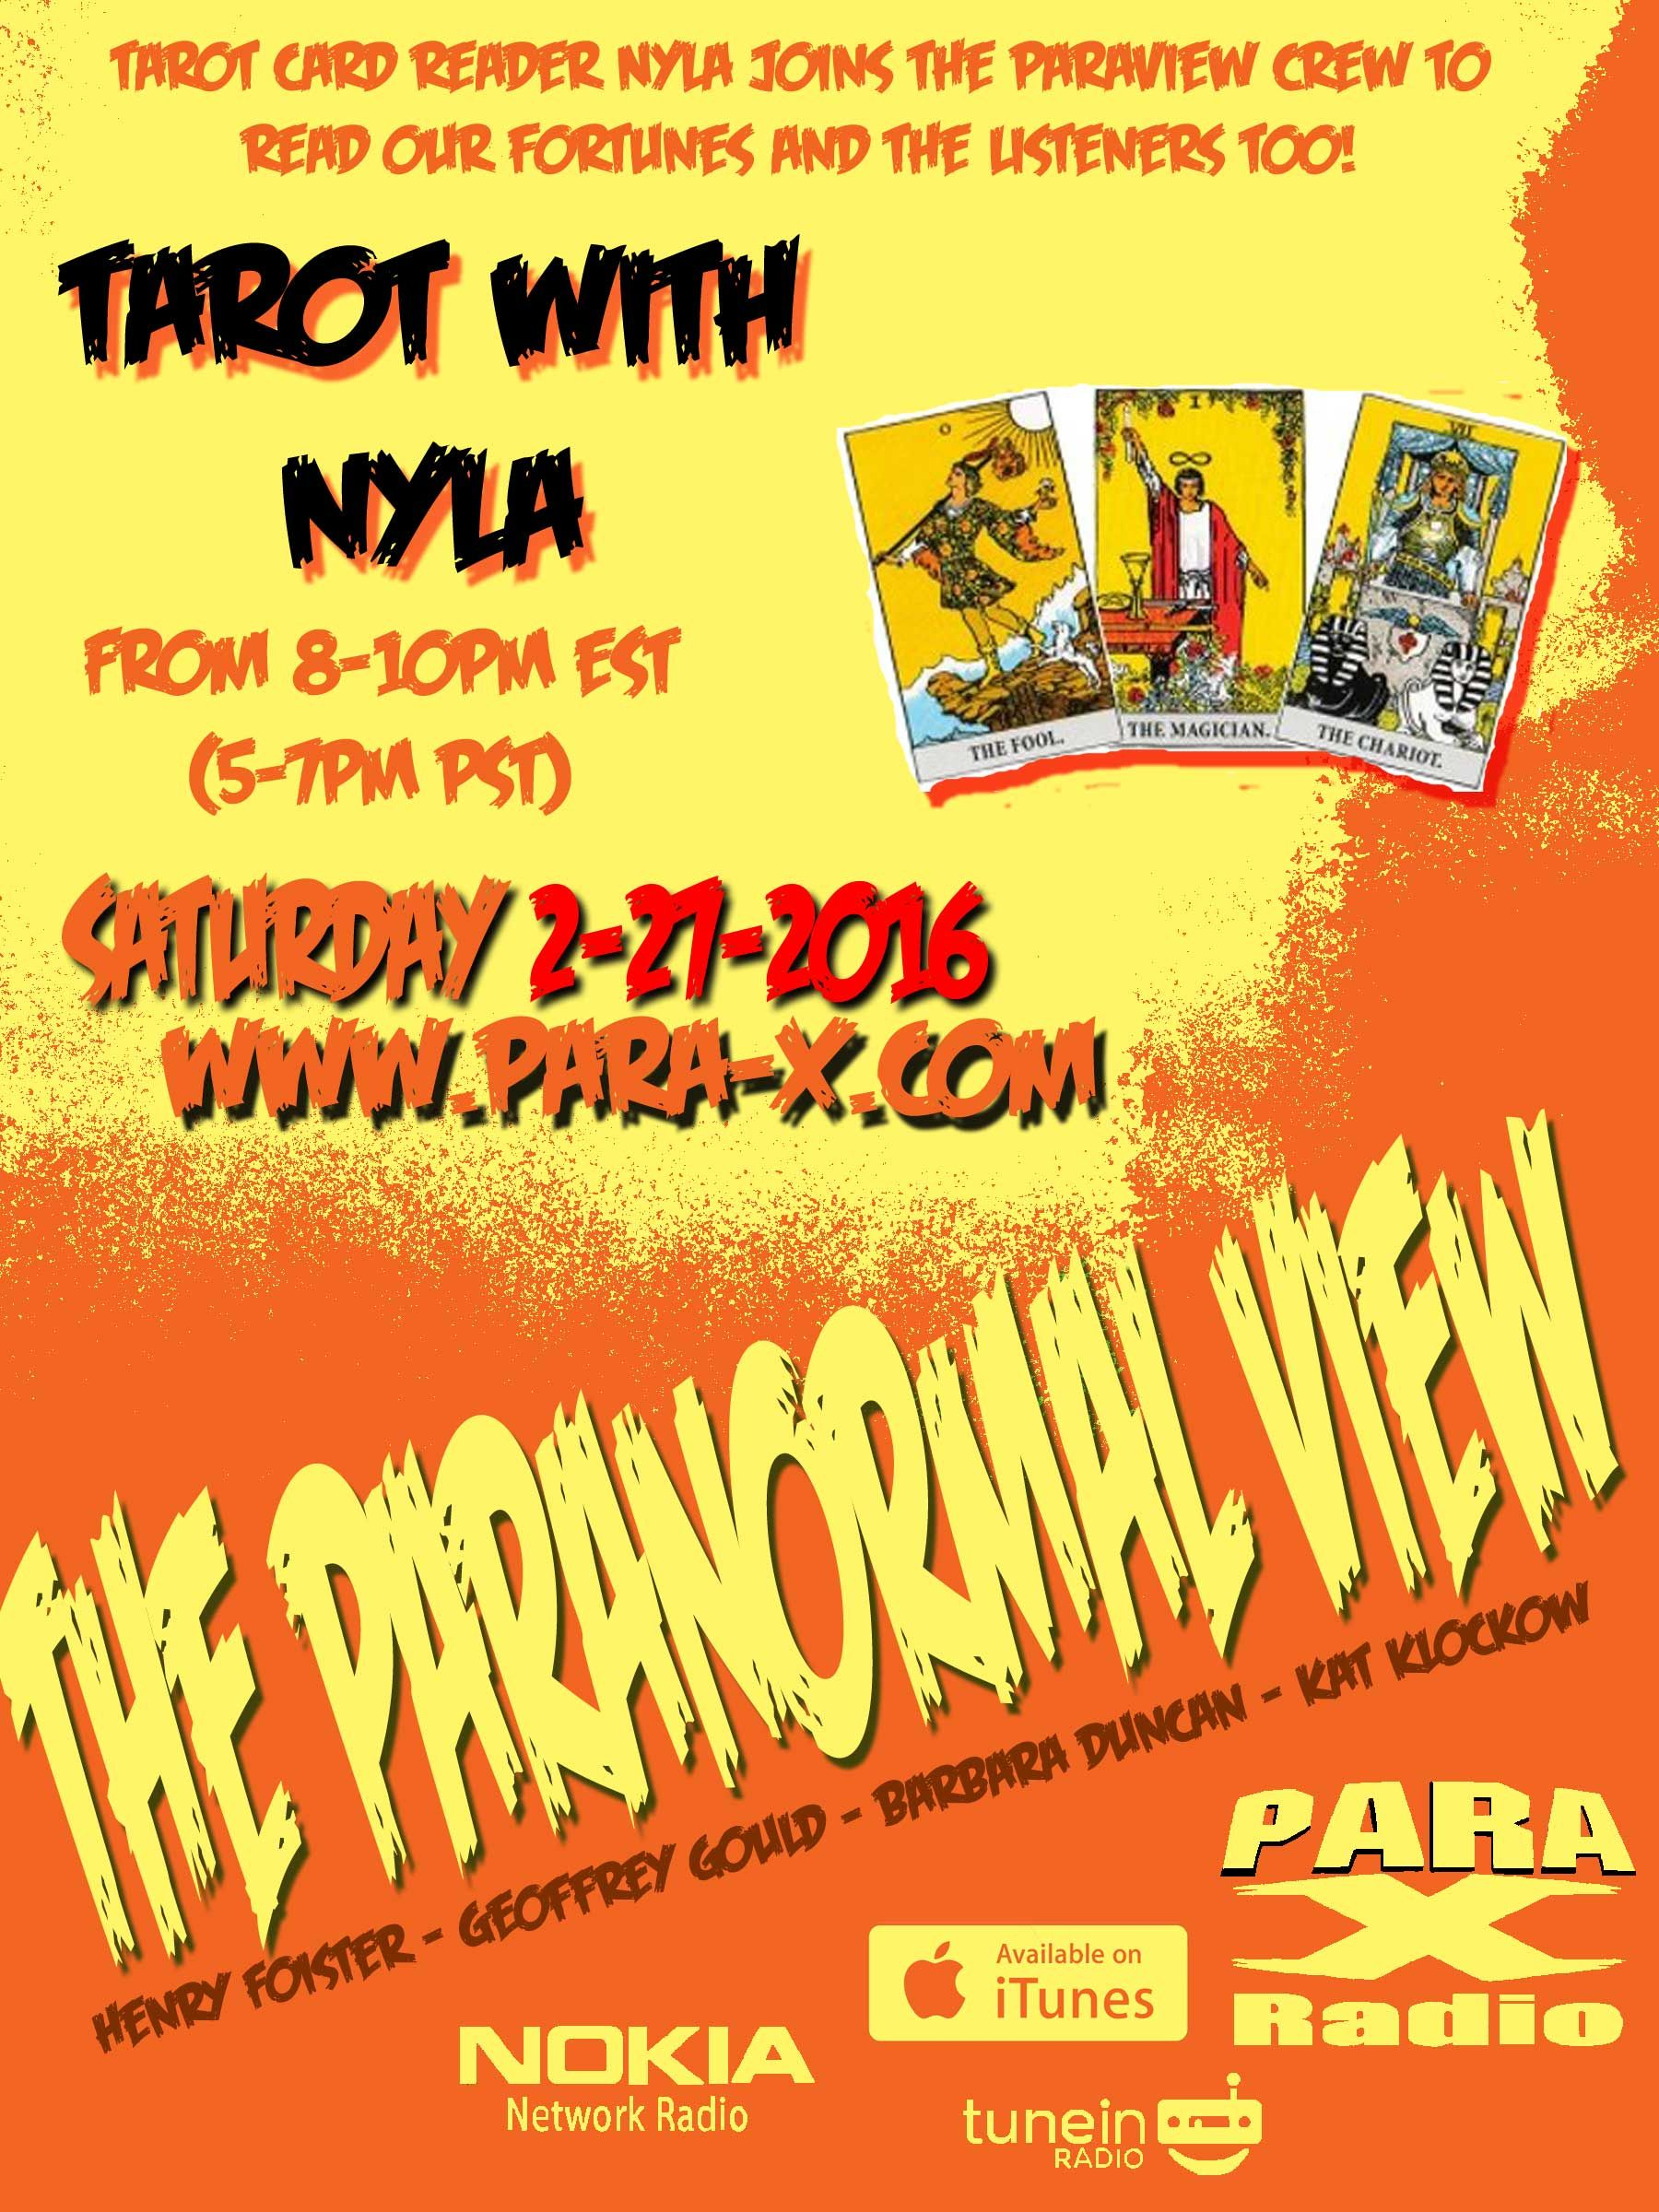 The Paranormal View 27 February 2016 edition with guest Nyla of the Night